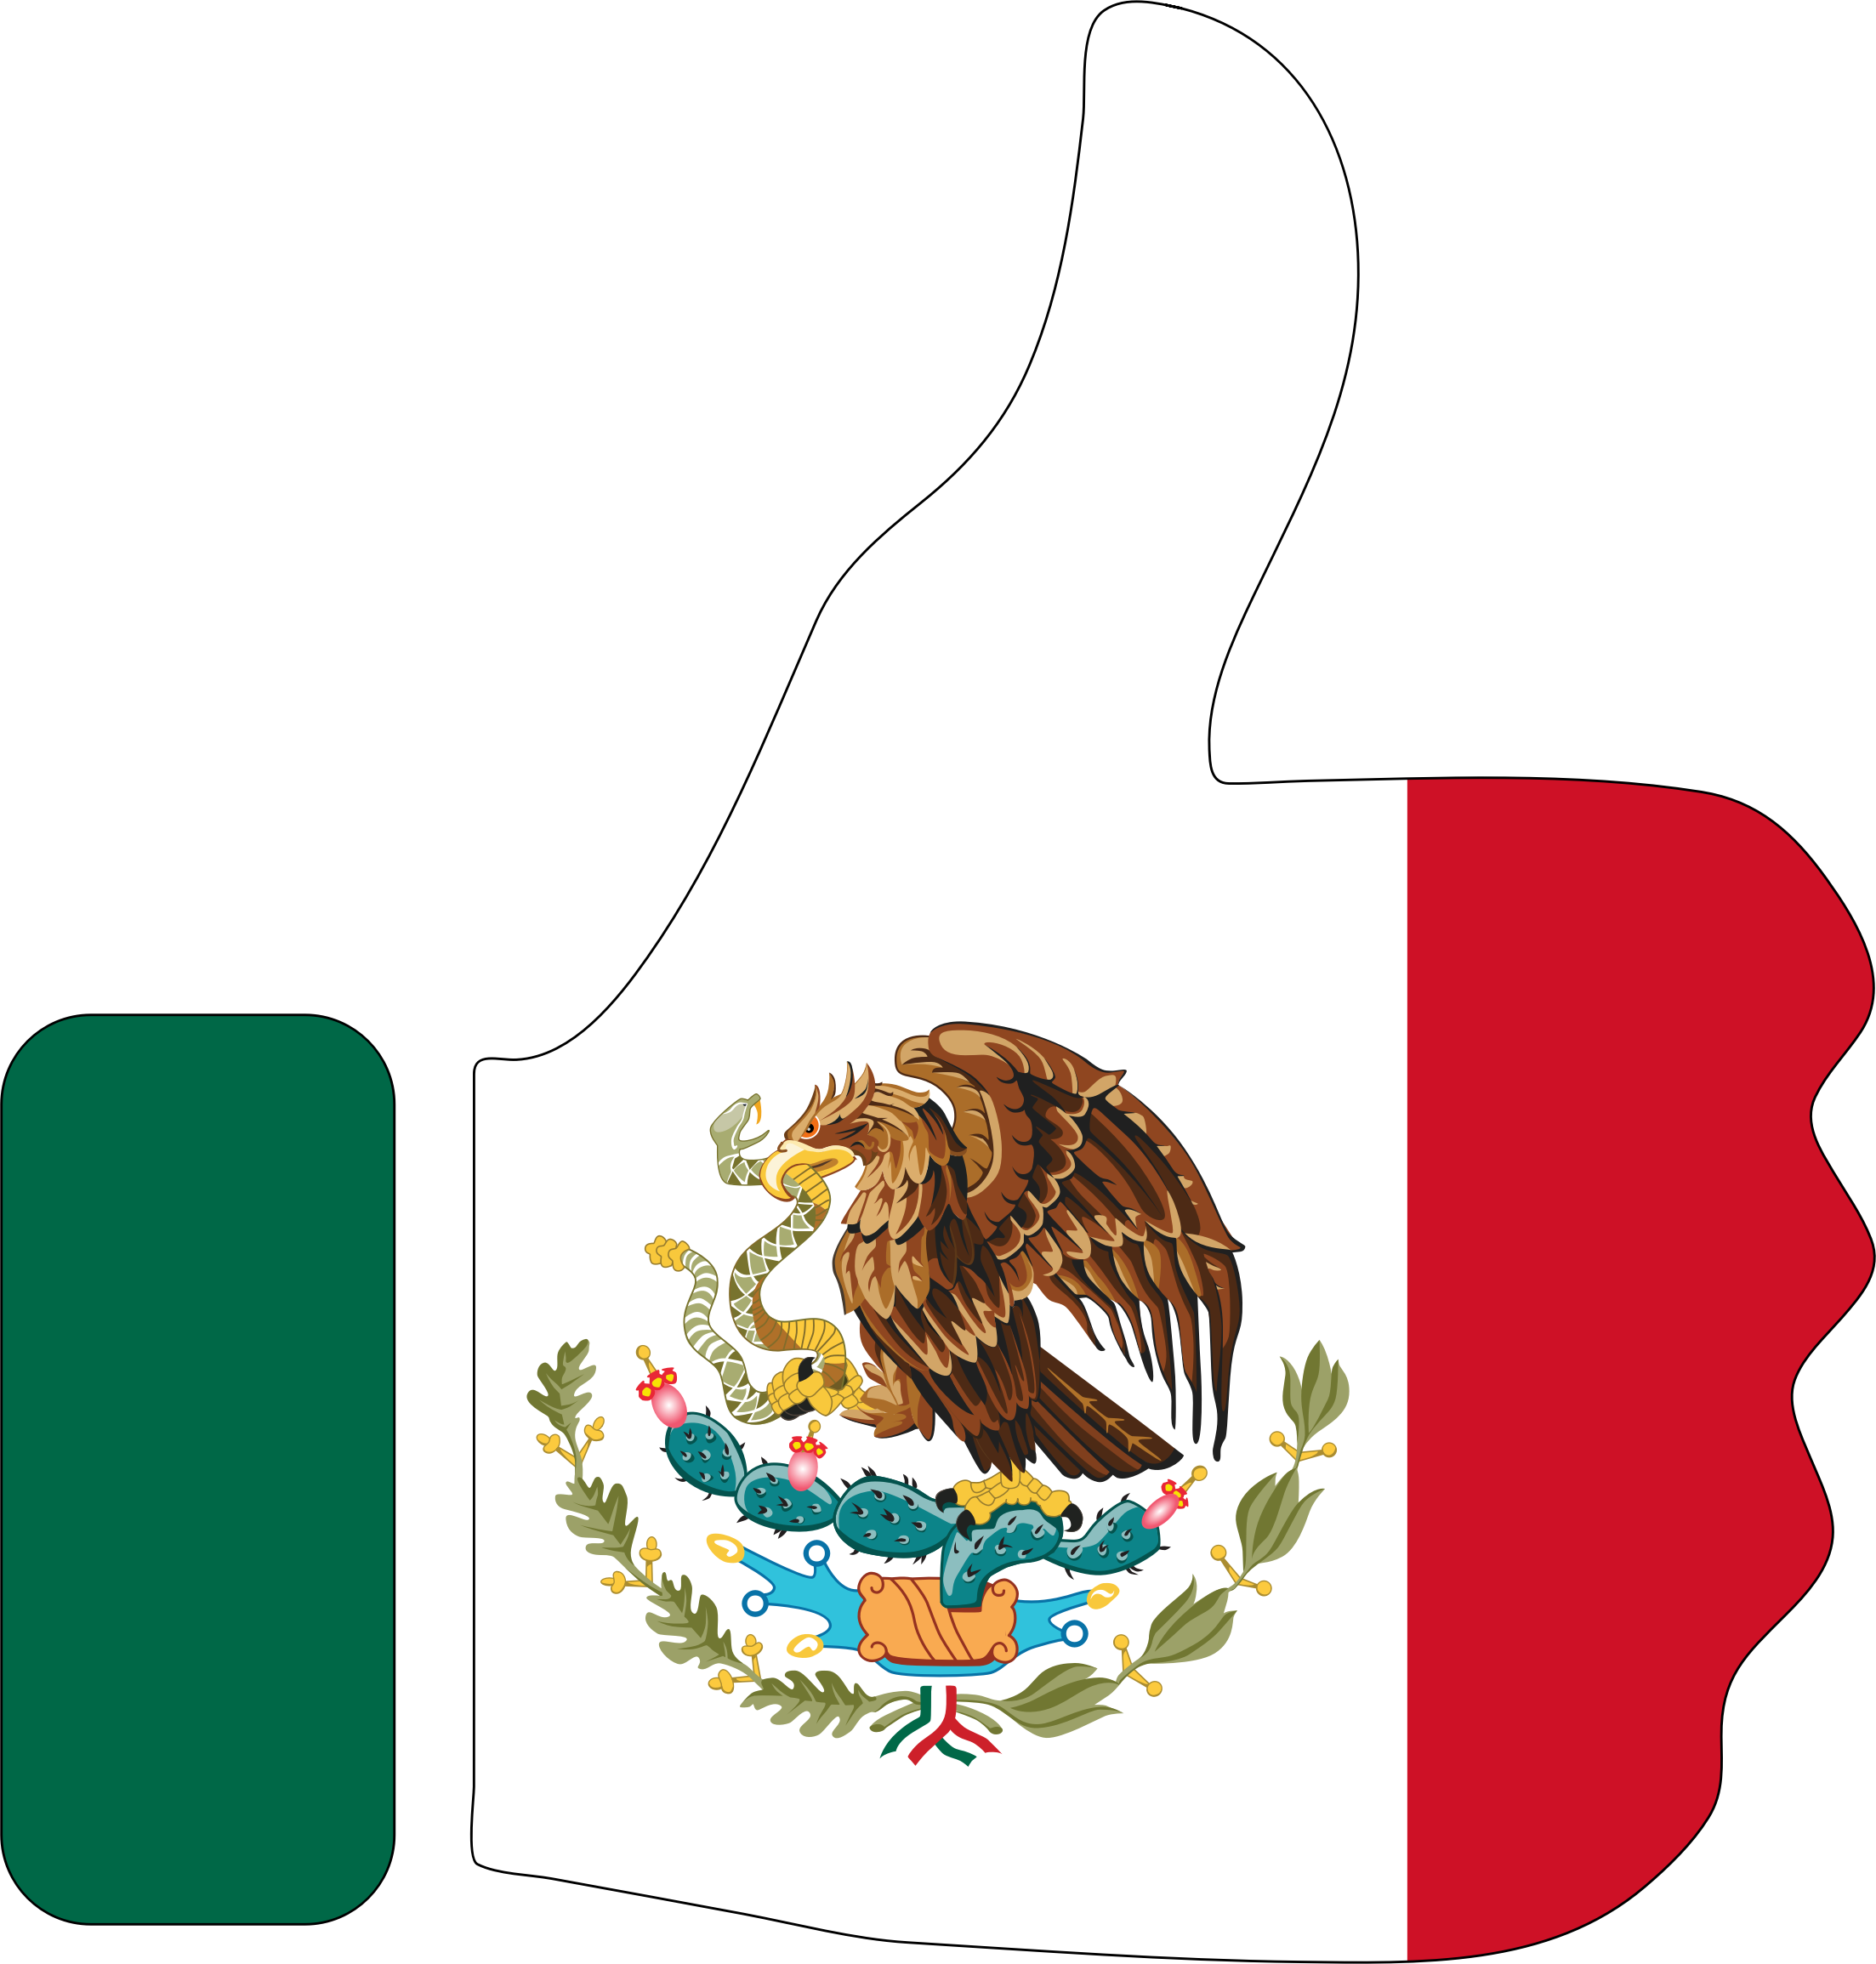 Mexico clipart outline mexico. Thumbs up with stroke